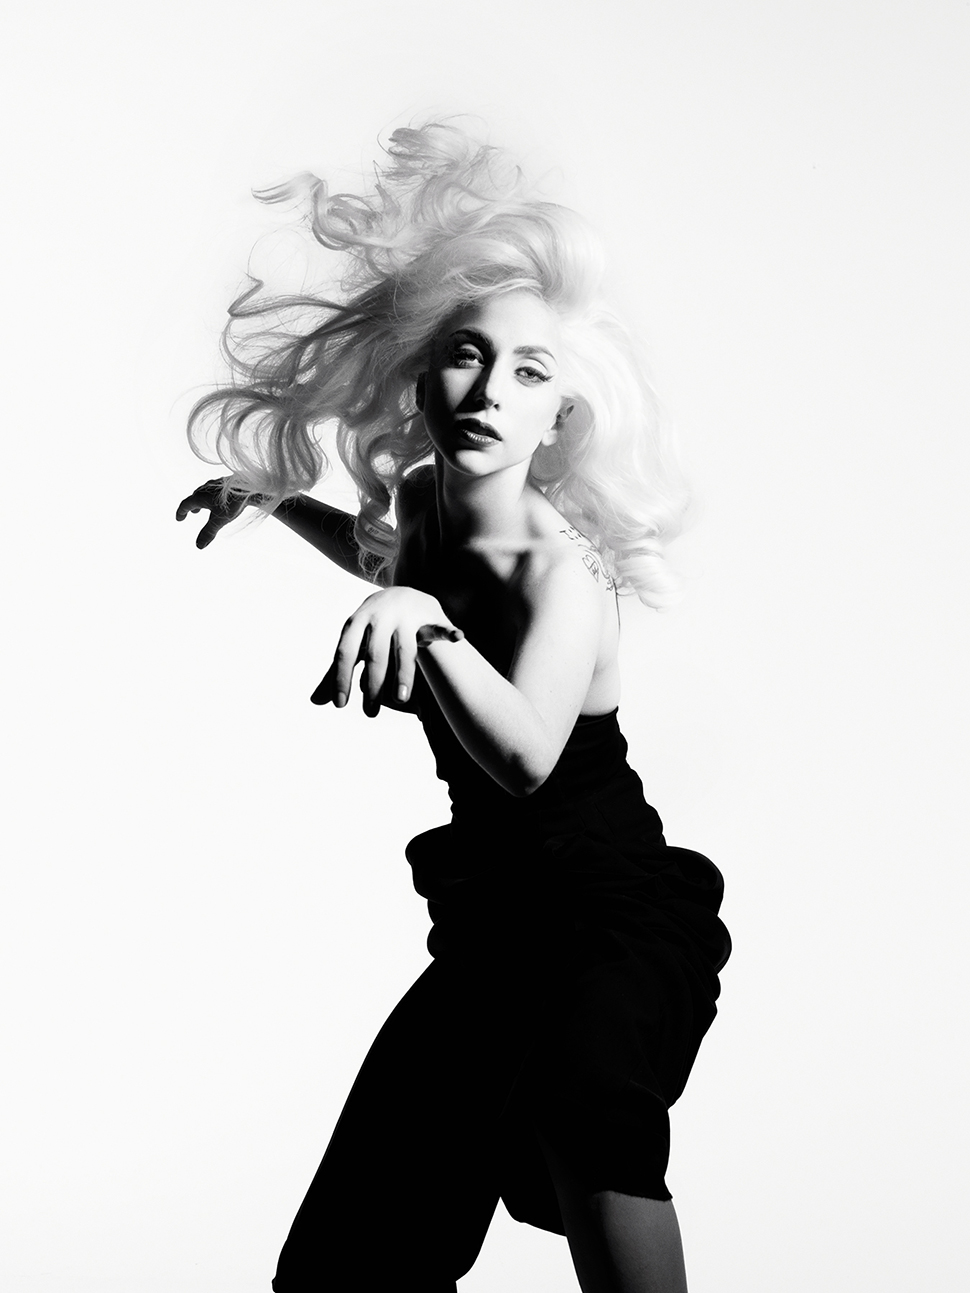 닉 나이트, Lady Gaga, 2009  ⓒ NICK KNIGHT